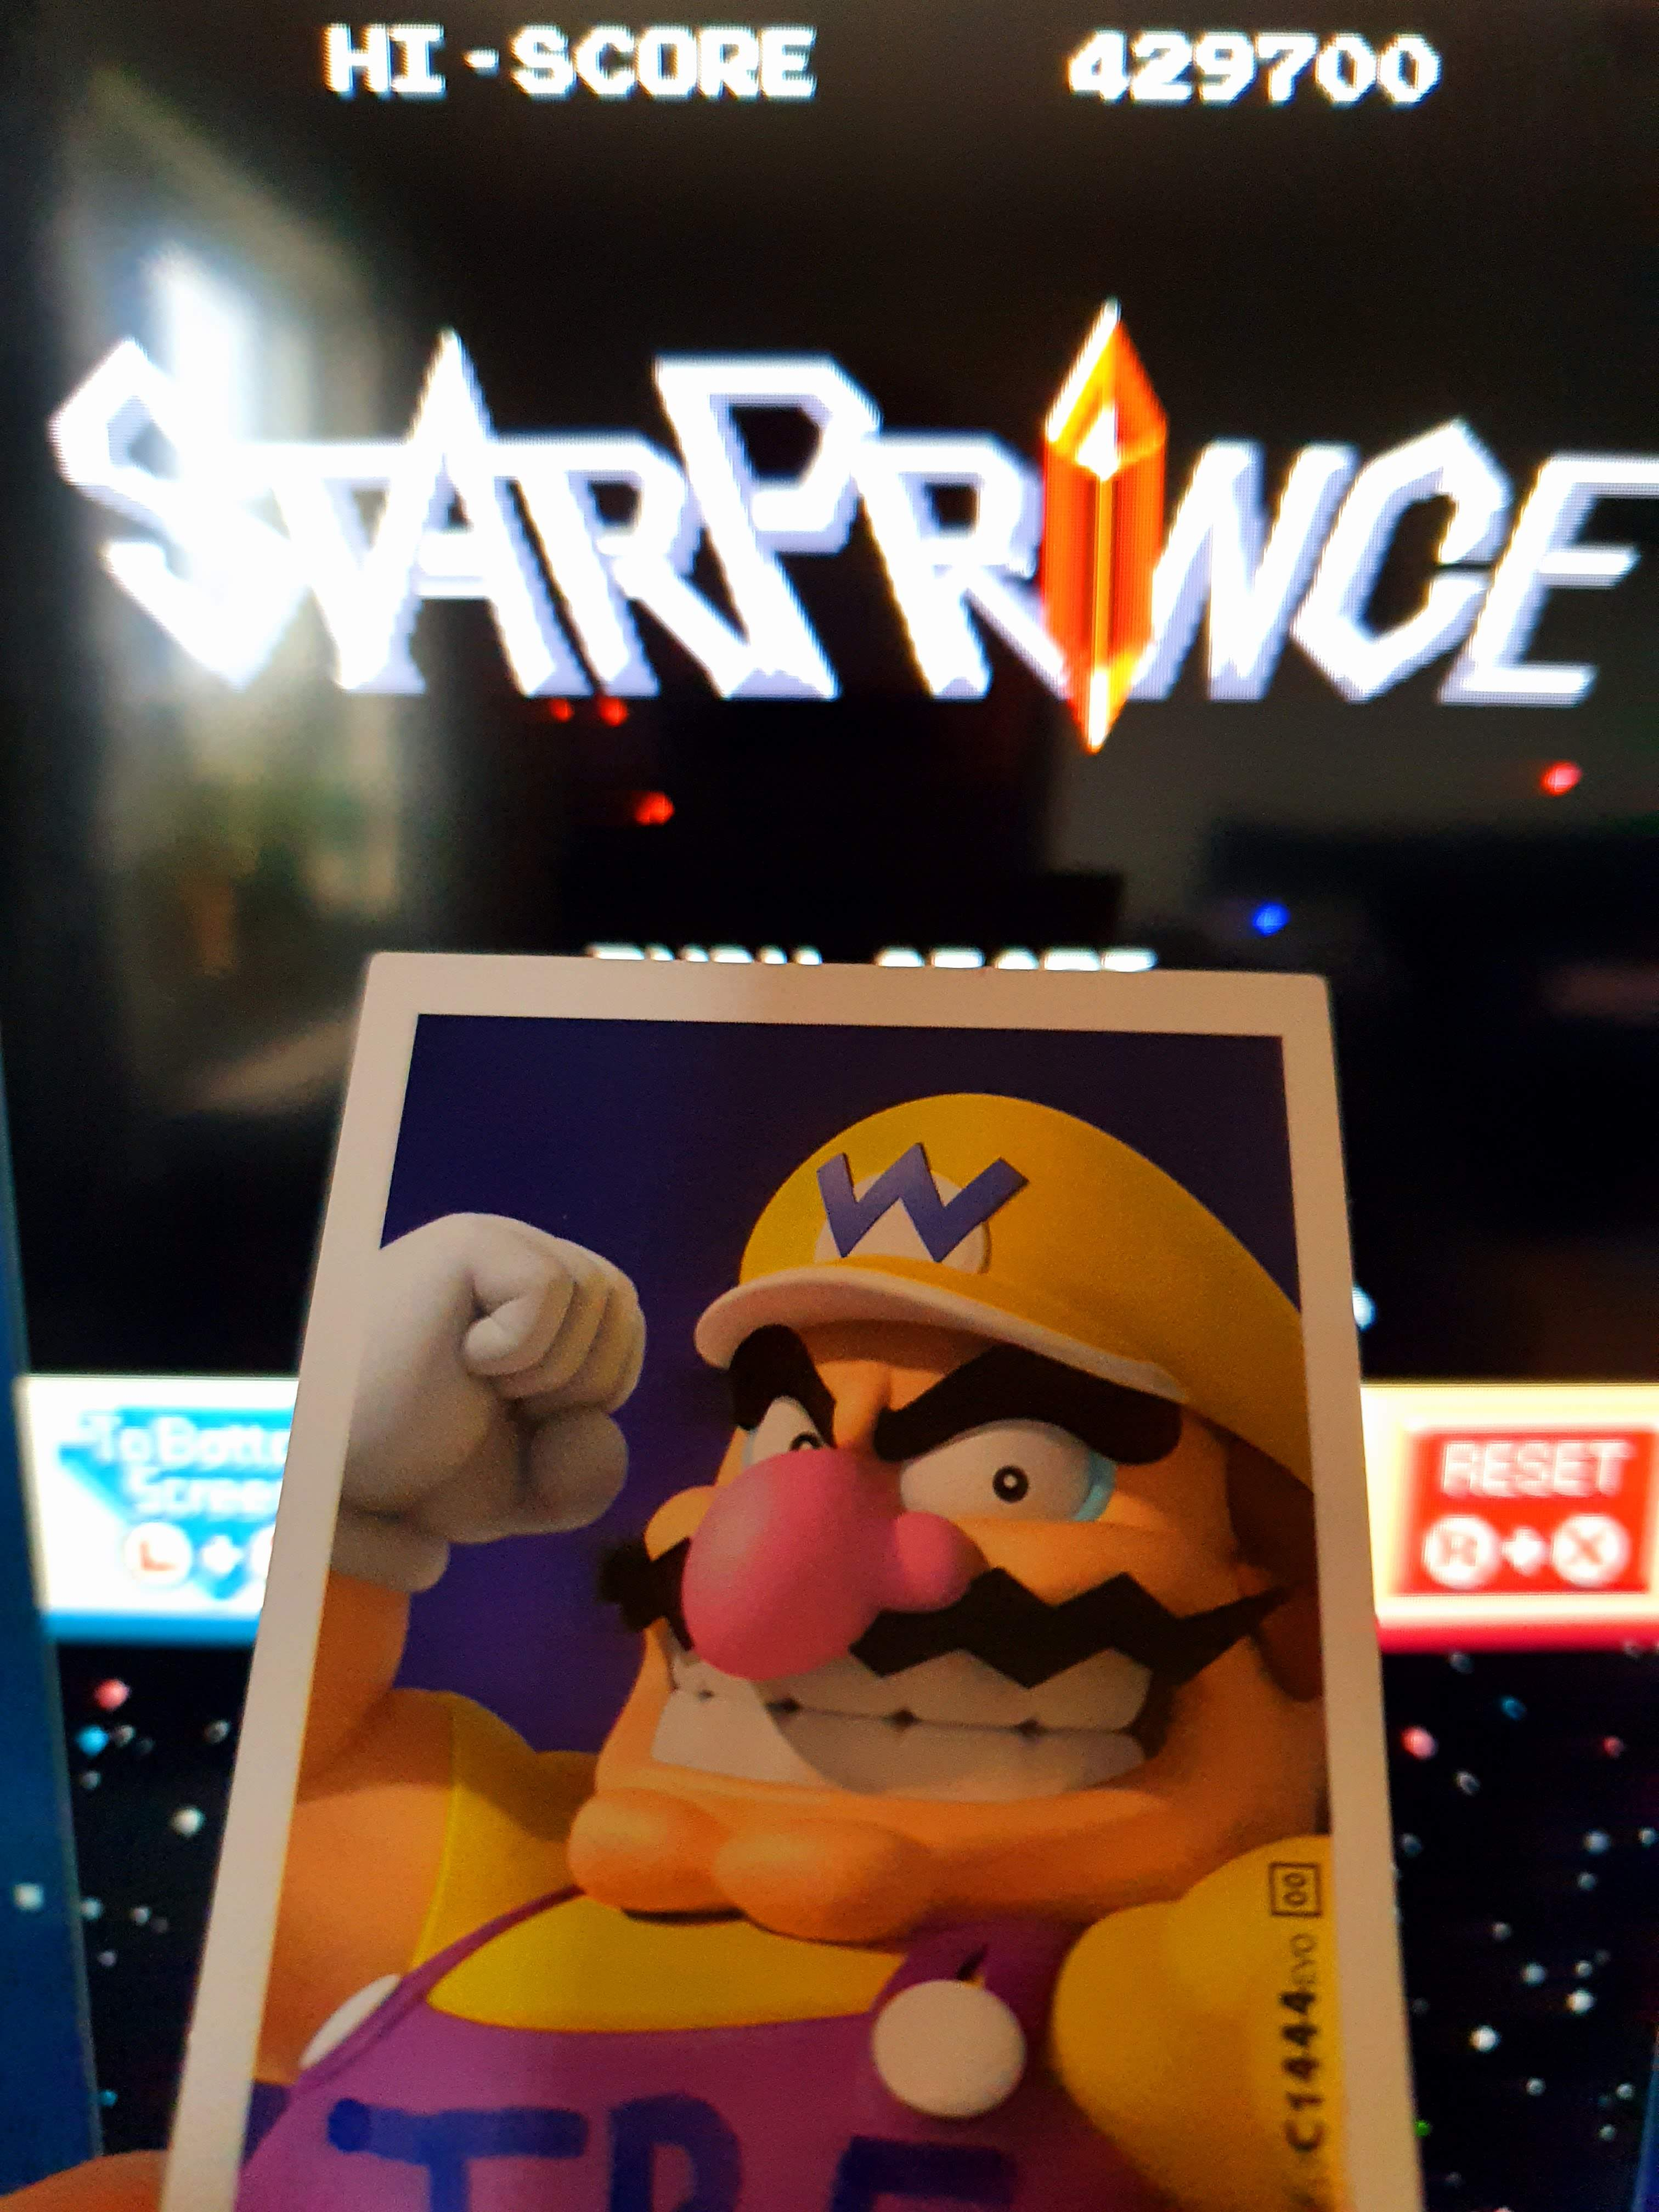 Sixx: Retro Game Challenge: Free Play: Star Prince (Nintendo DS Emulated) 429,700 points on 2020-04-26 12:52:22